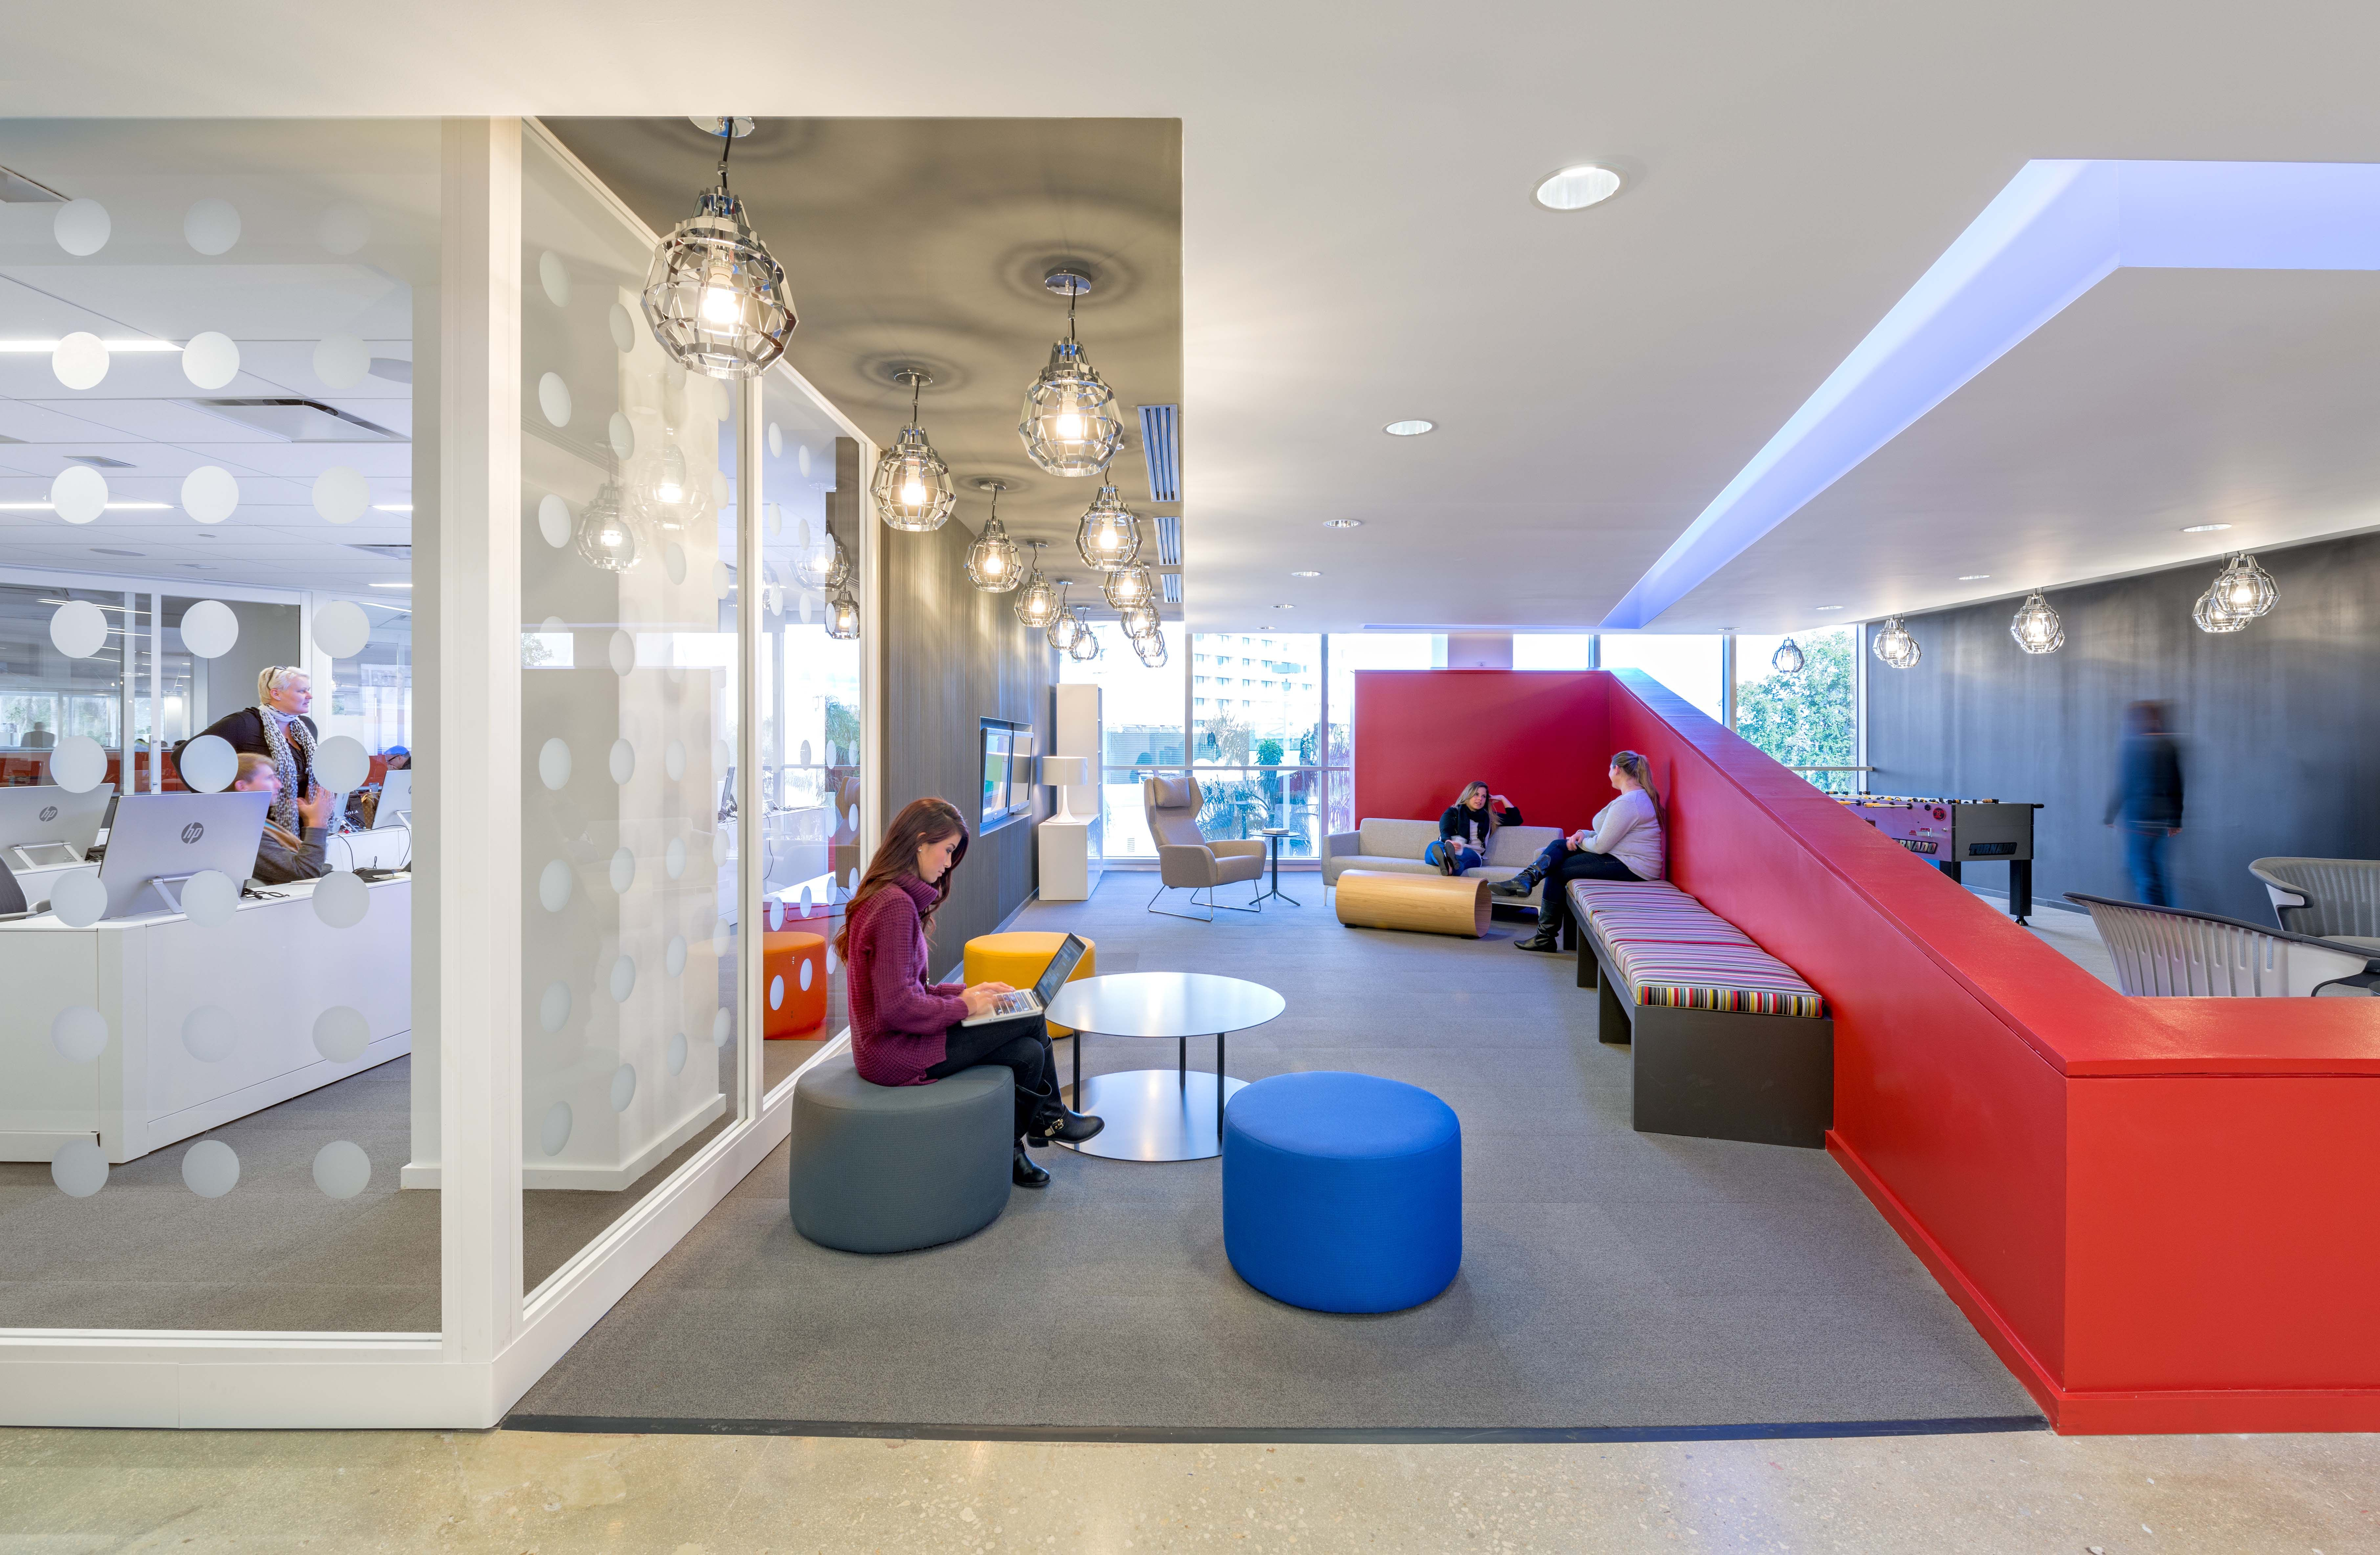 The zlounge and the social media newsroom